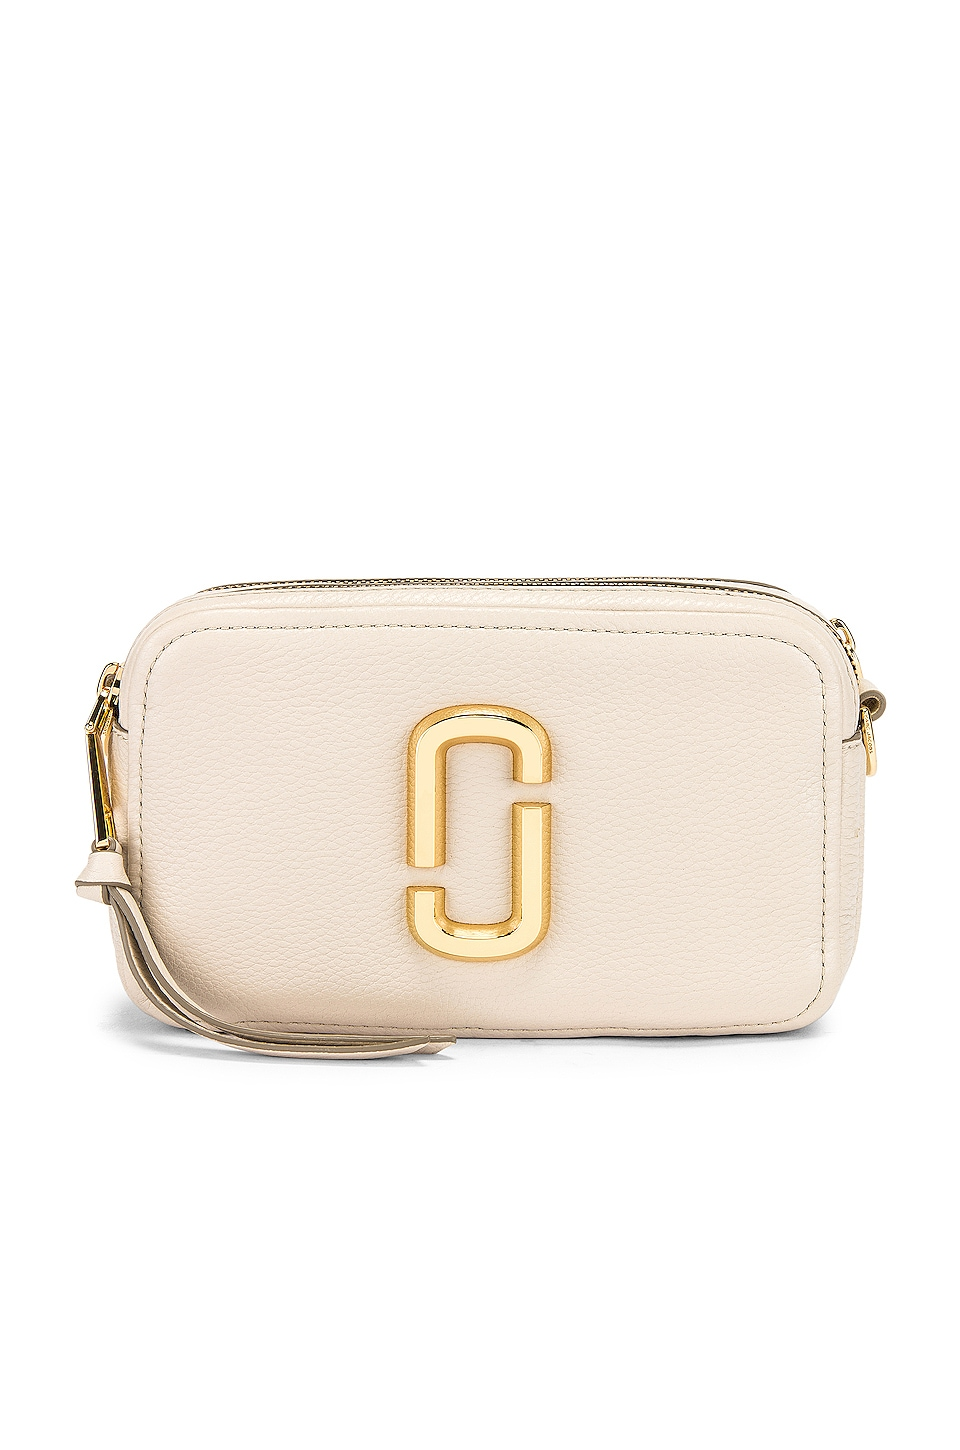 Marc Jacobs The Softshot 21 in Cream